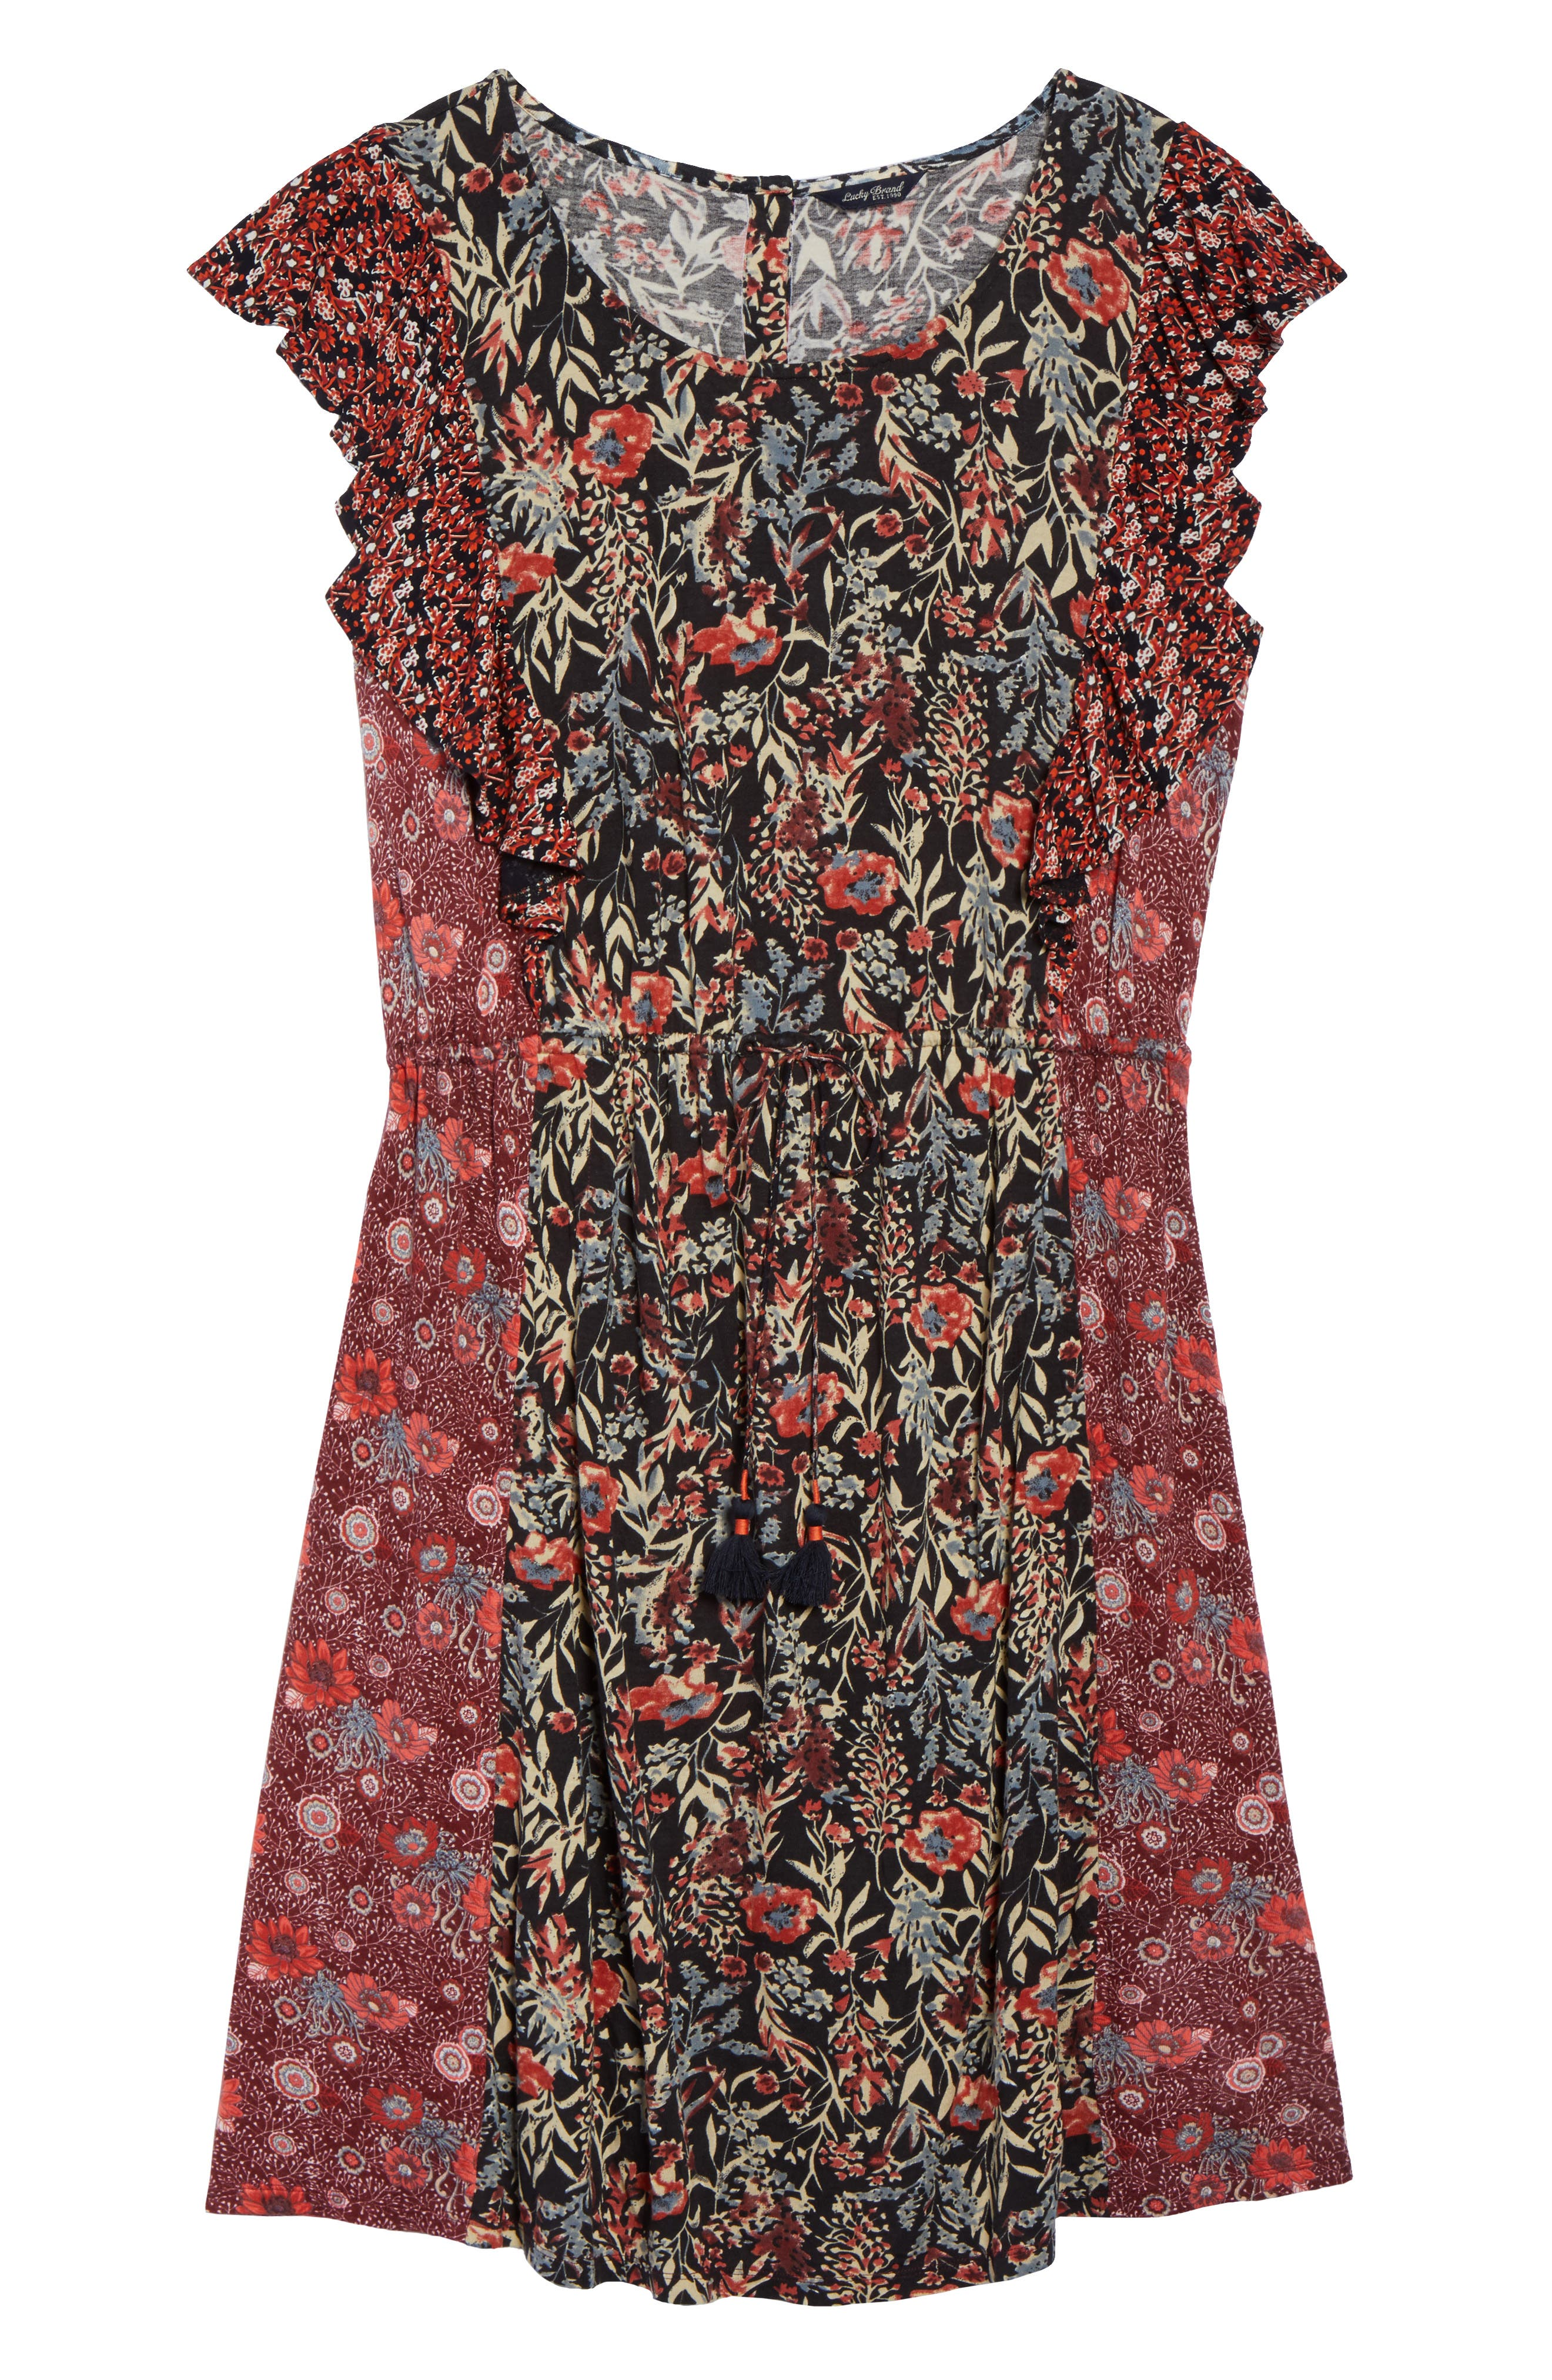 Mixed Floral Print Dress,                             Alternate thumbnail 6, color,                             640